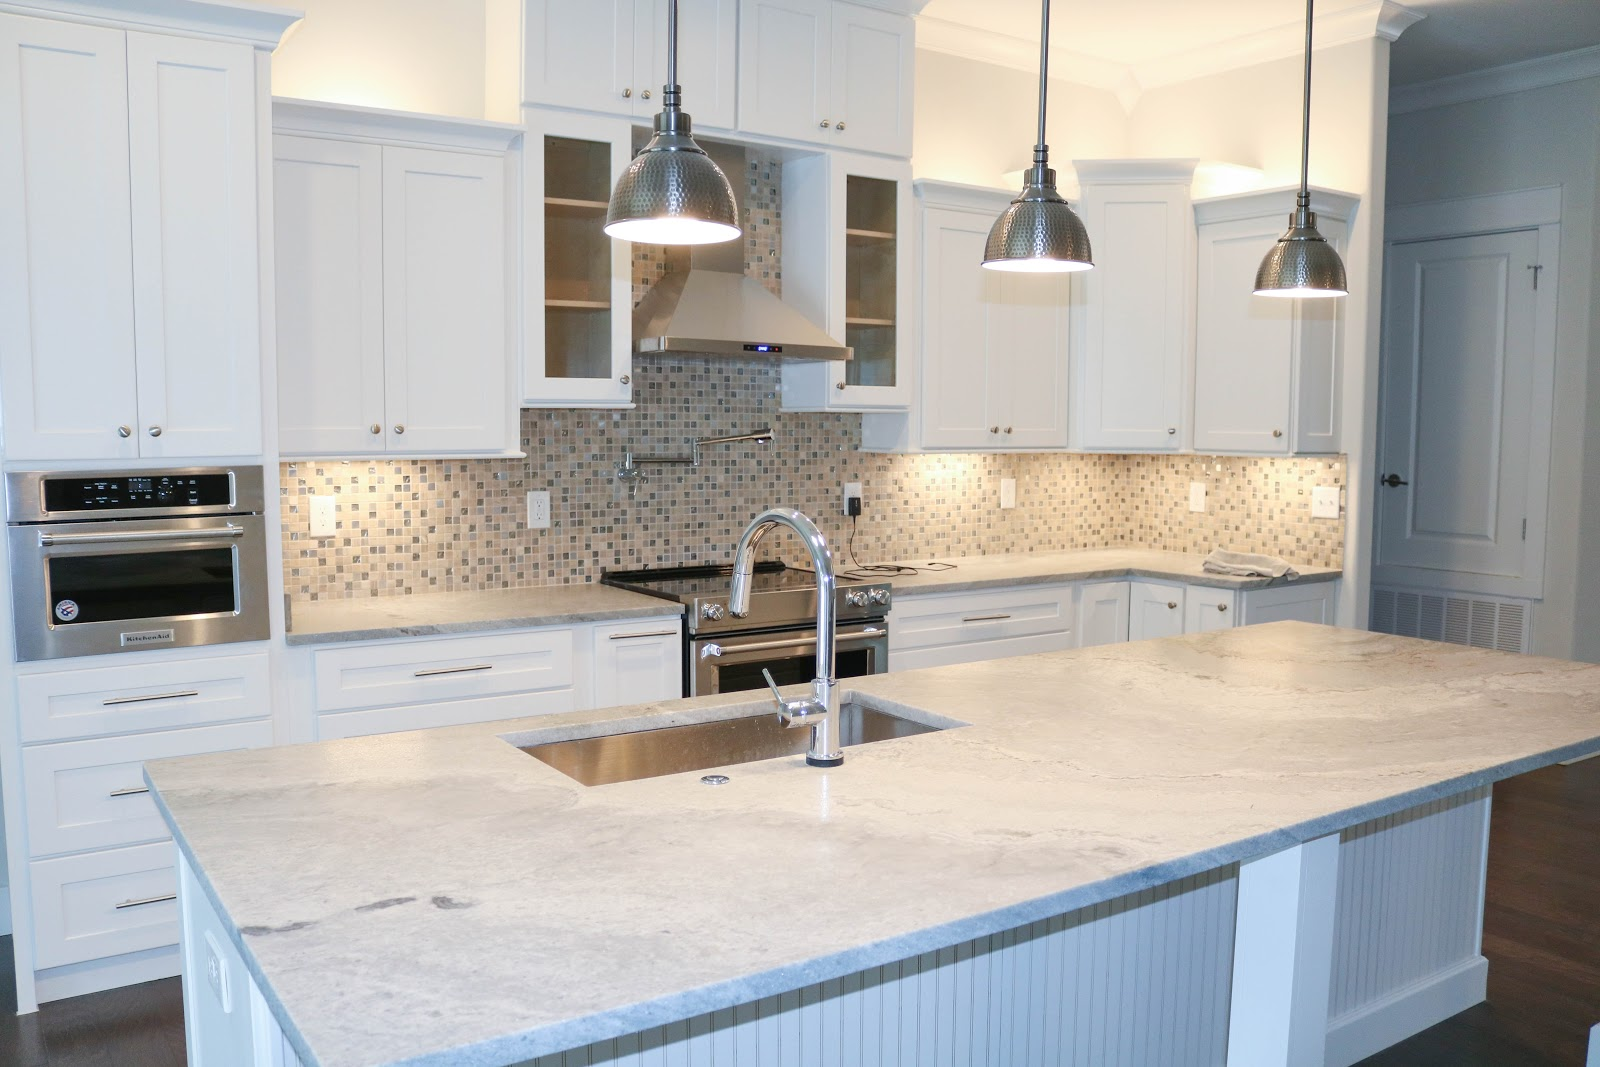 Beautiful kitchen with a large island and white cabinets and a light backwash.